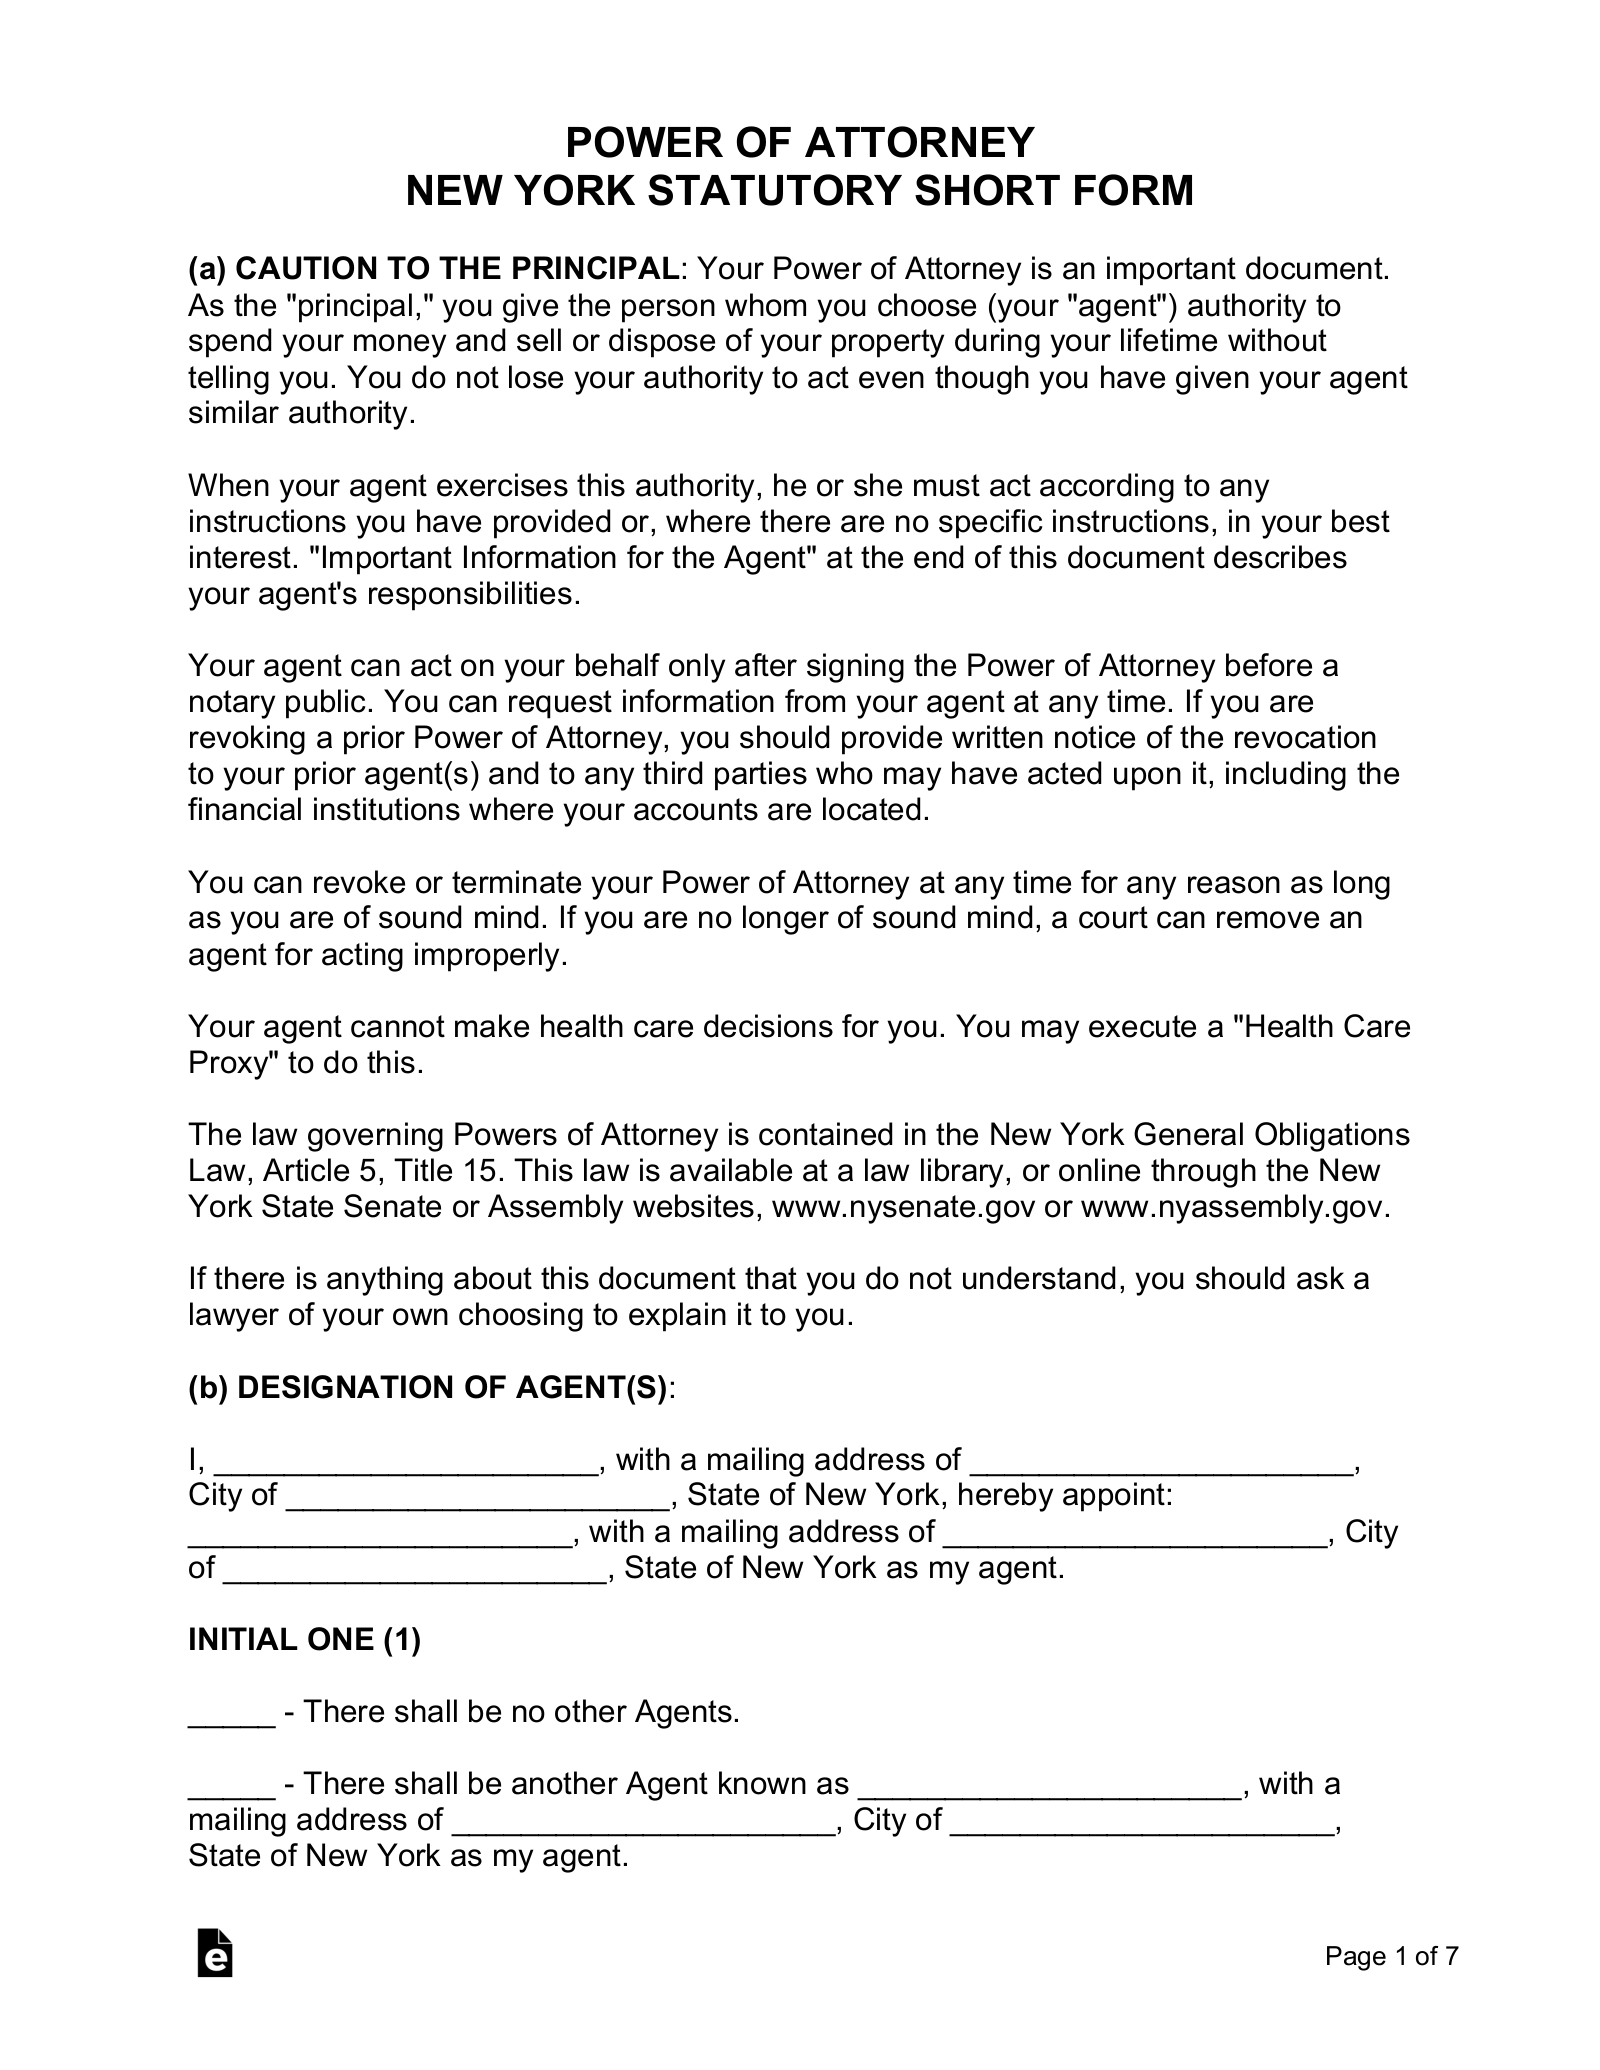 fillable power of attorney form ny  Free New York Power of Attorney Forms - PDF | Word | eForms ...